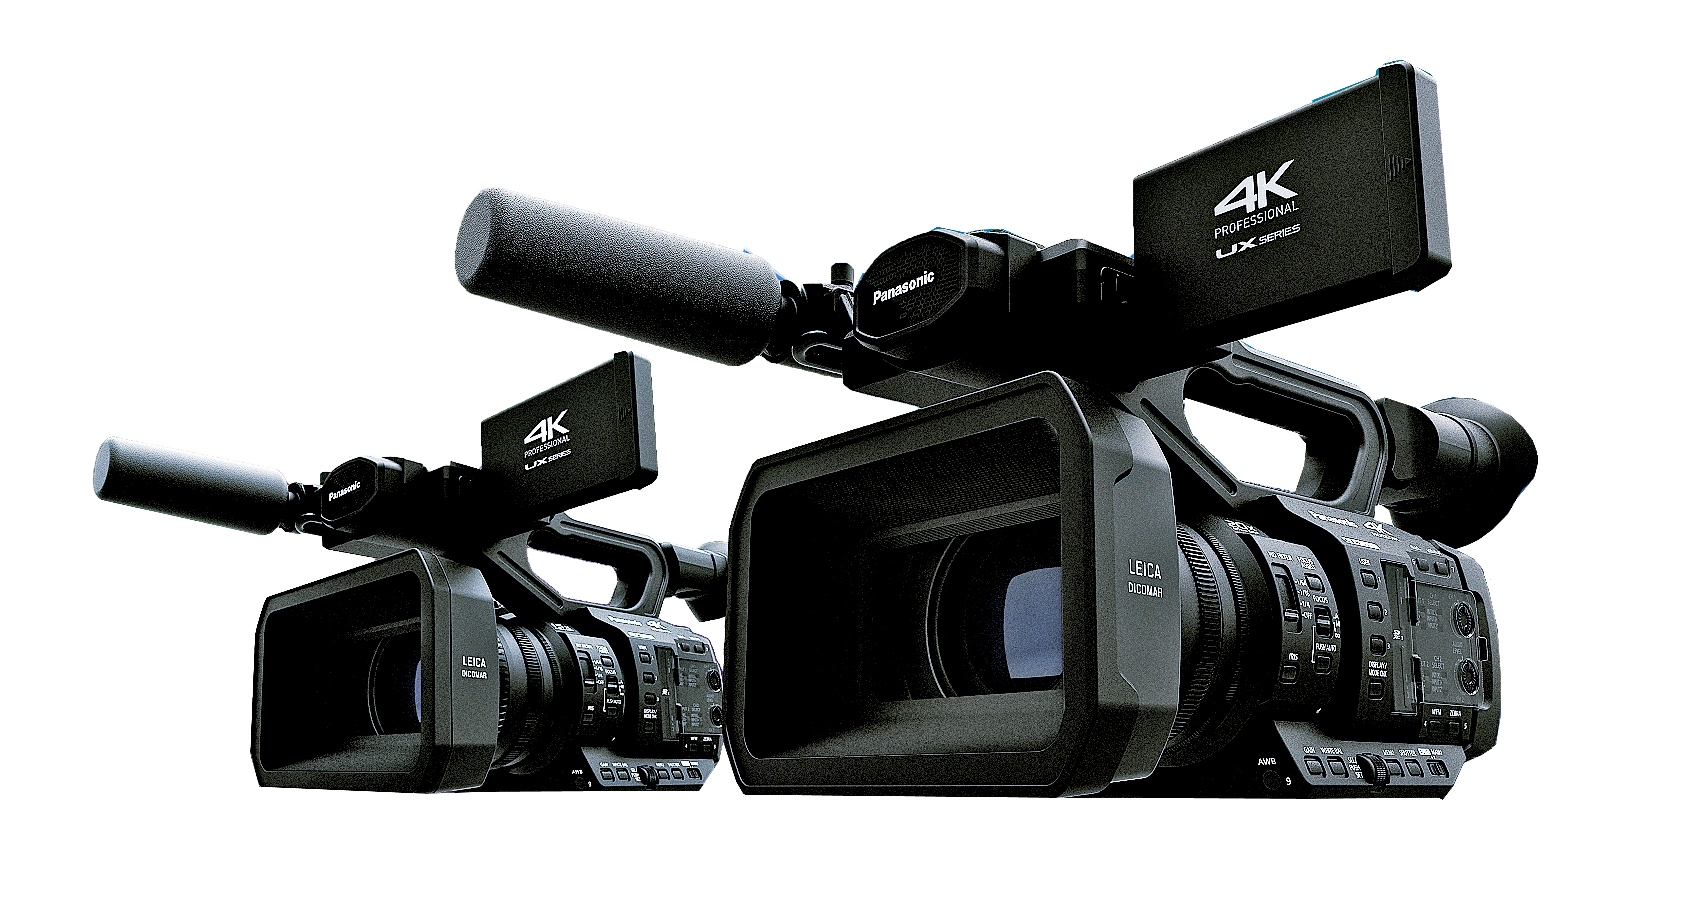 Panasonic AG-UX180 4K camcorder has 24mm wide lens - Newsshooter